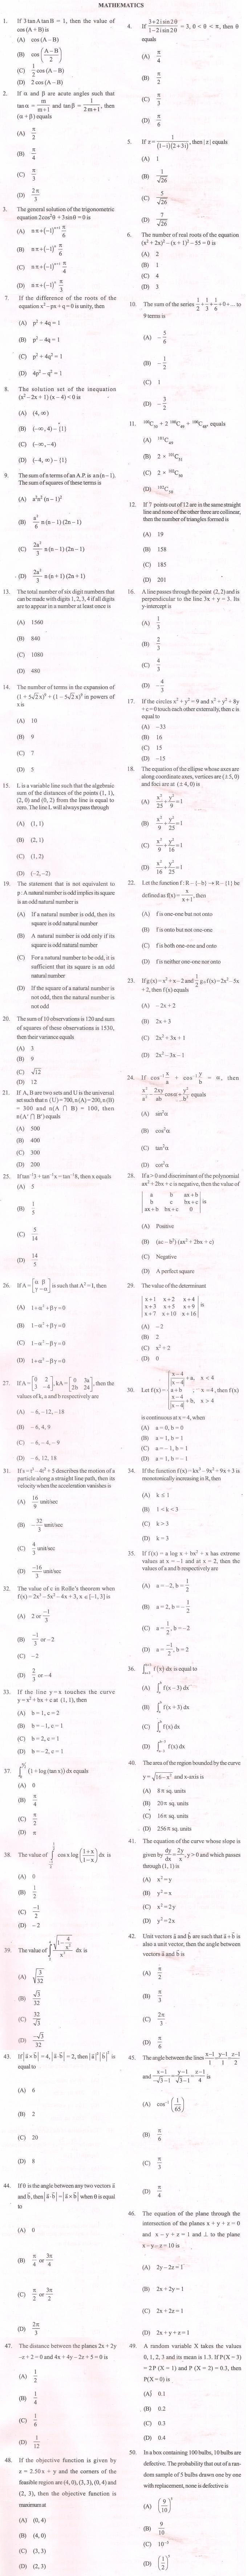 APJEE 2012 Question Papers - Mathematics